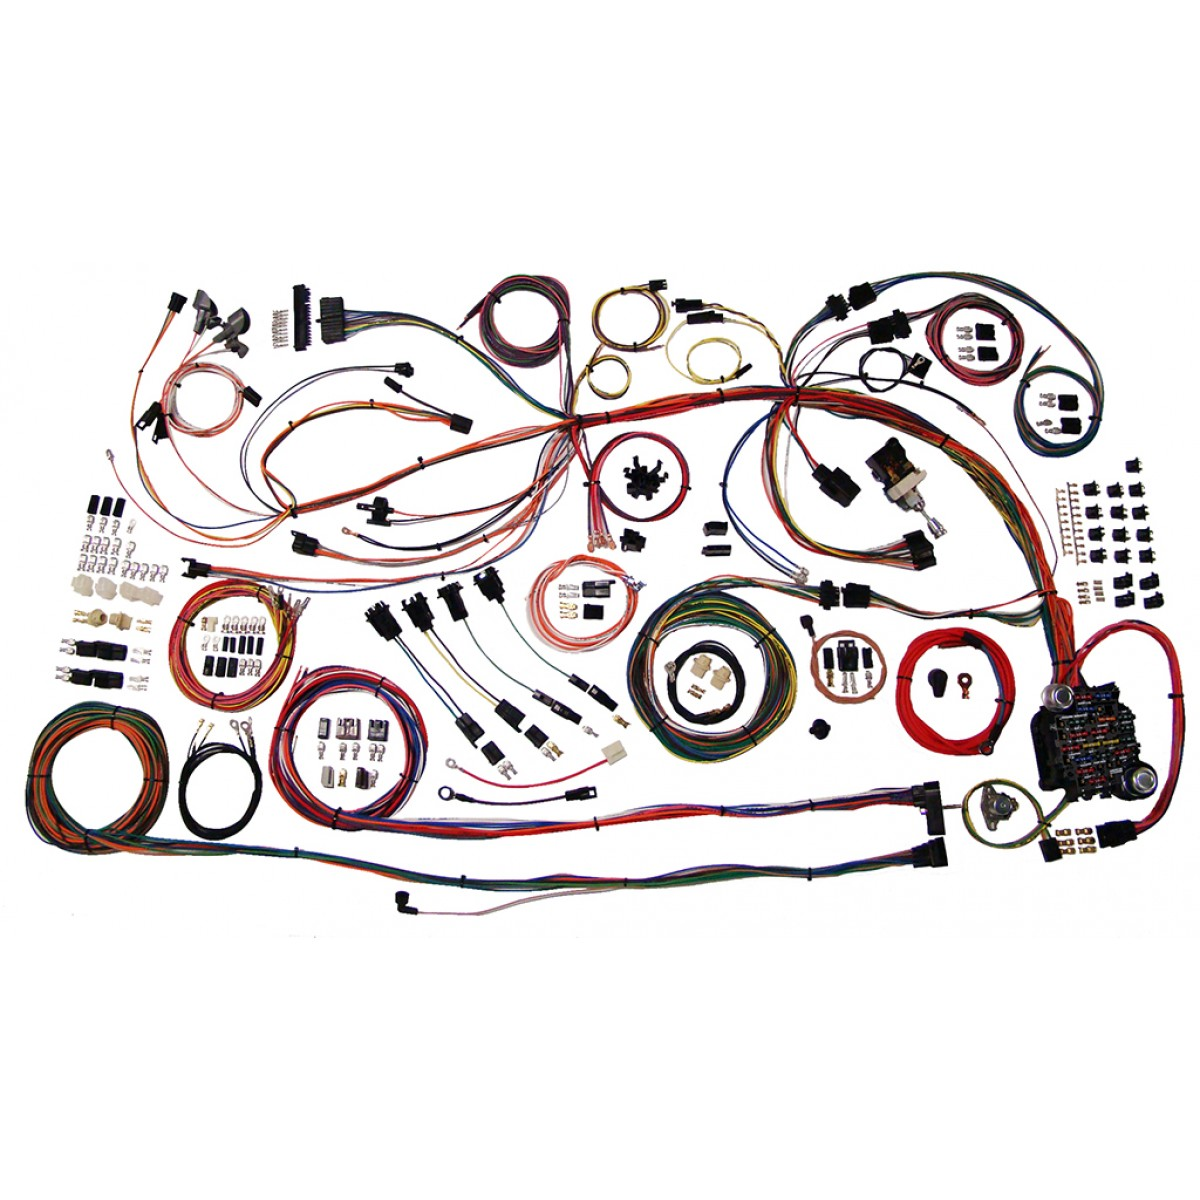 hight resolution of complete wiring harness kit 1968 1969 chevelle part 510158